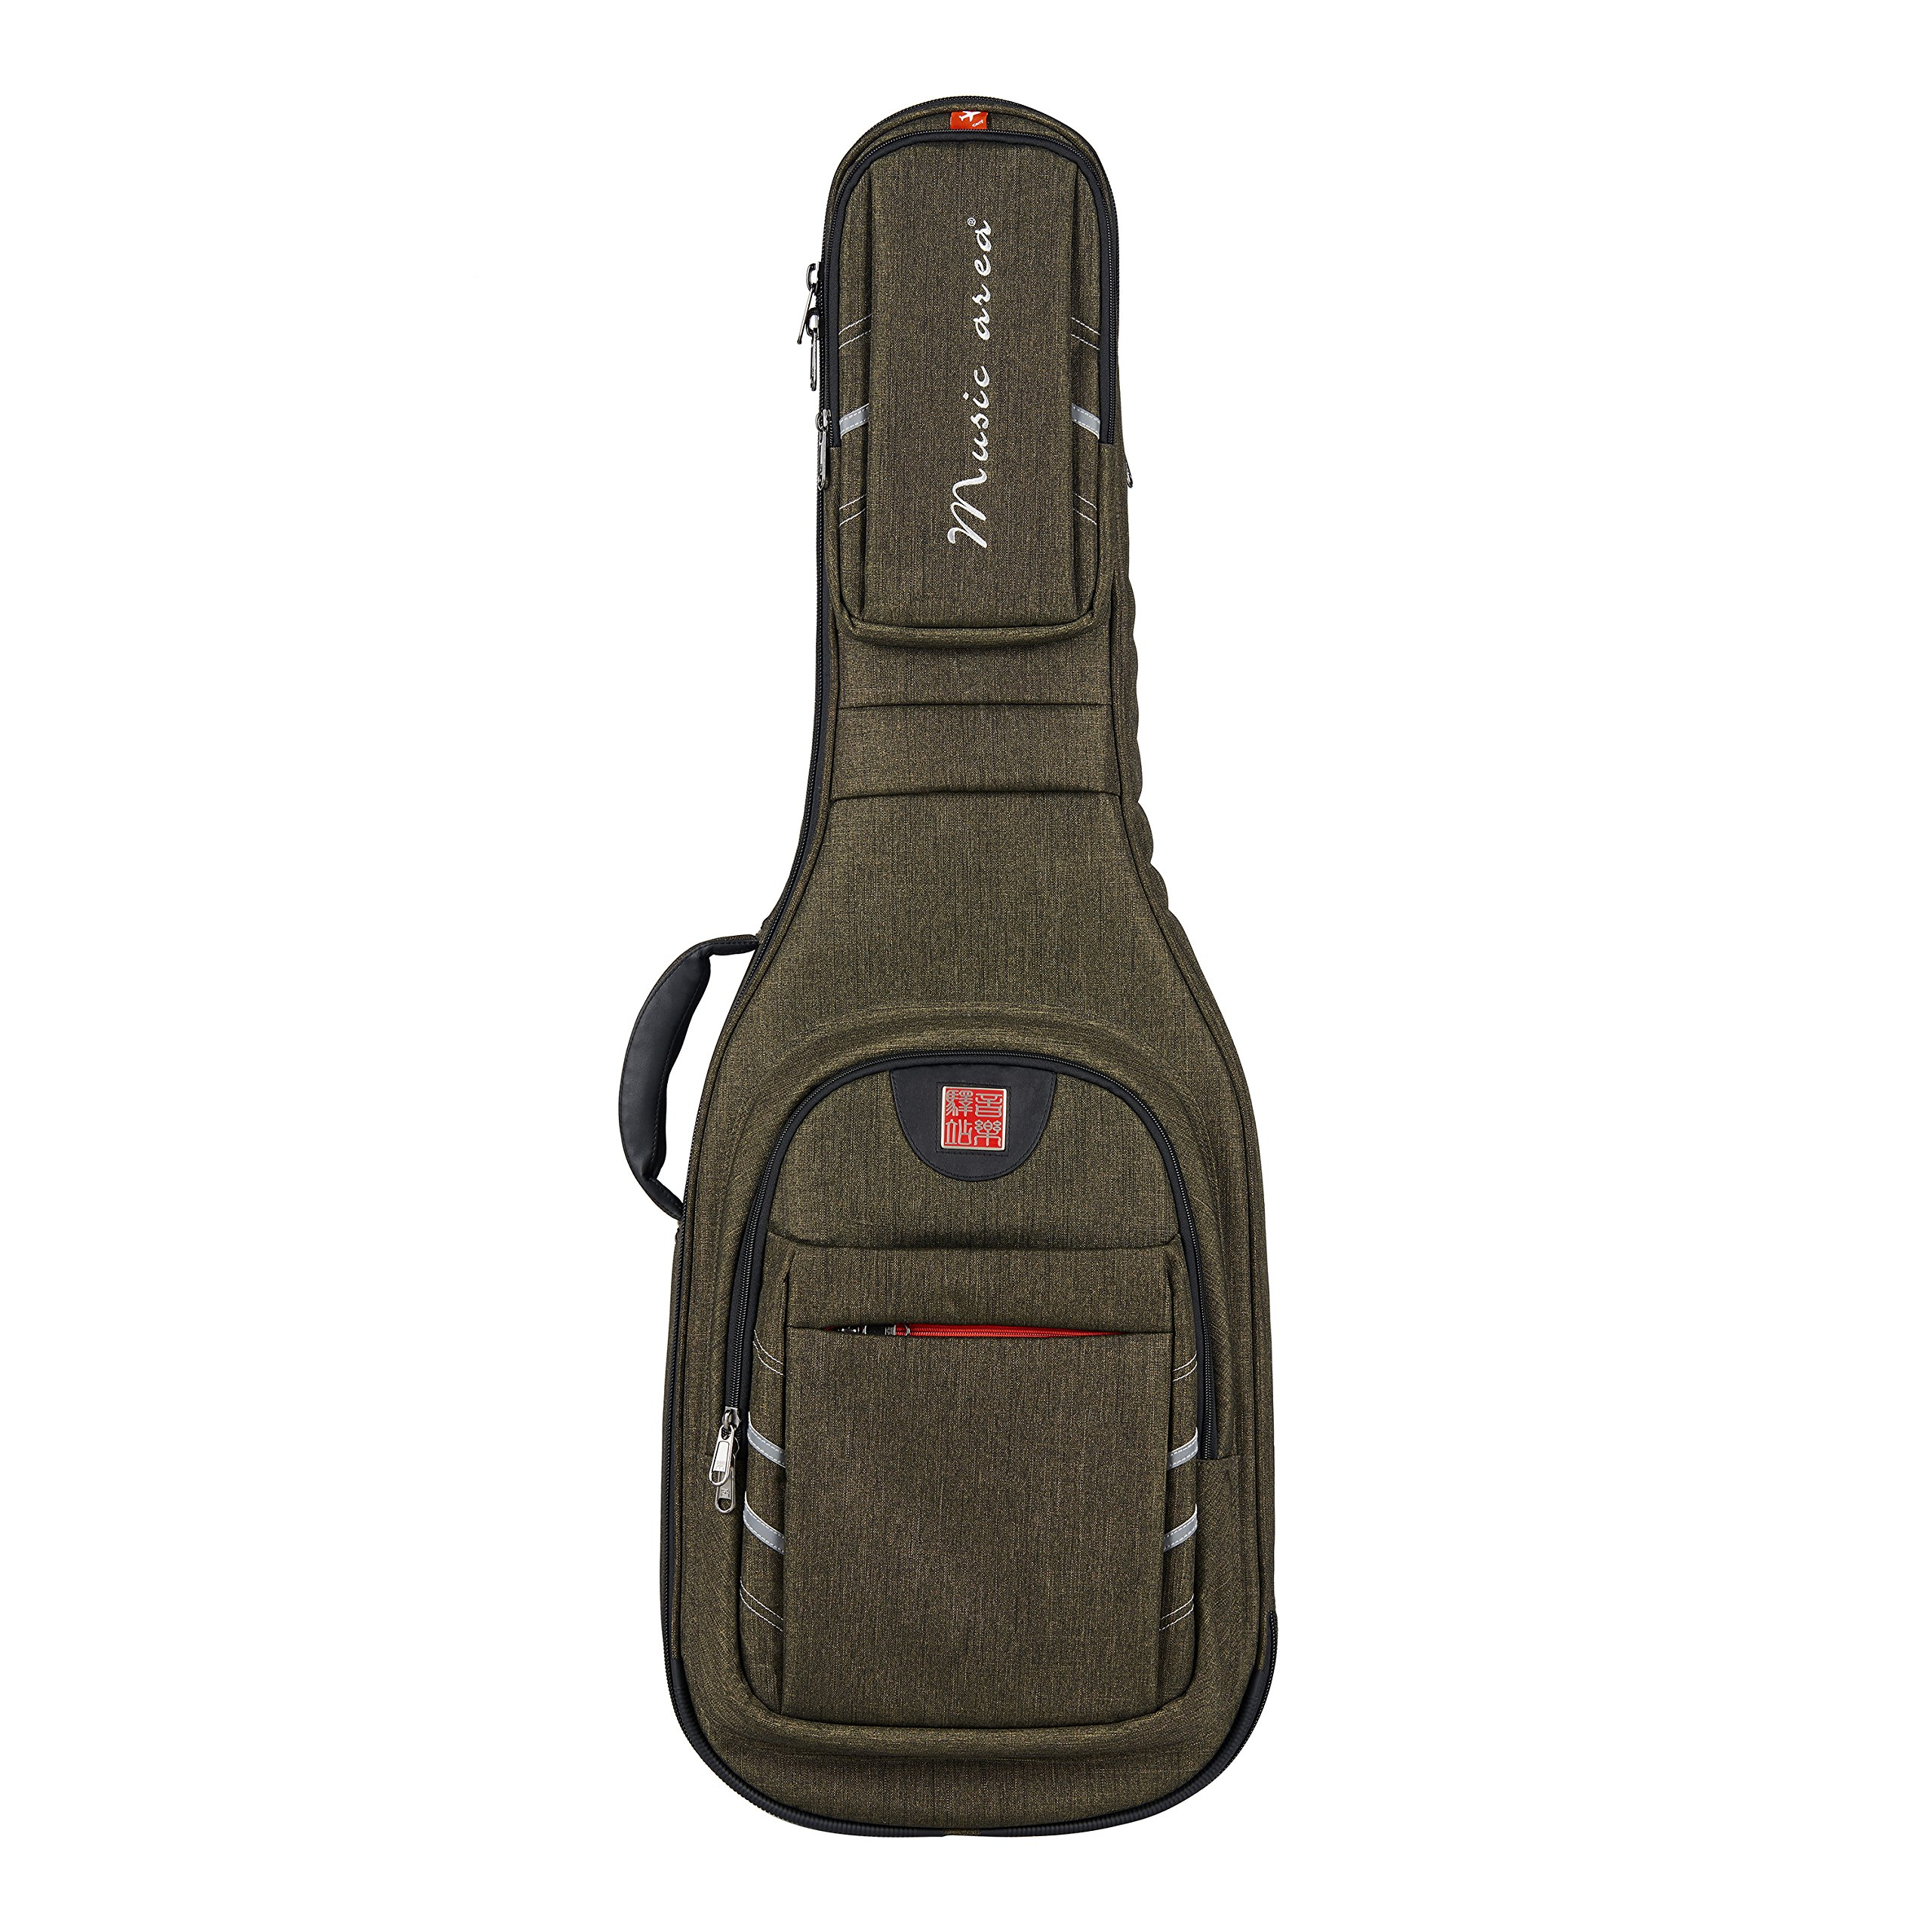 Music Area WIND 30 Series Electric Guitar Bag - Green WIND30-EG-GRN product